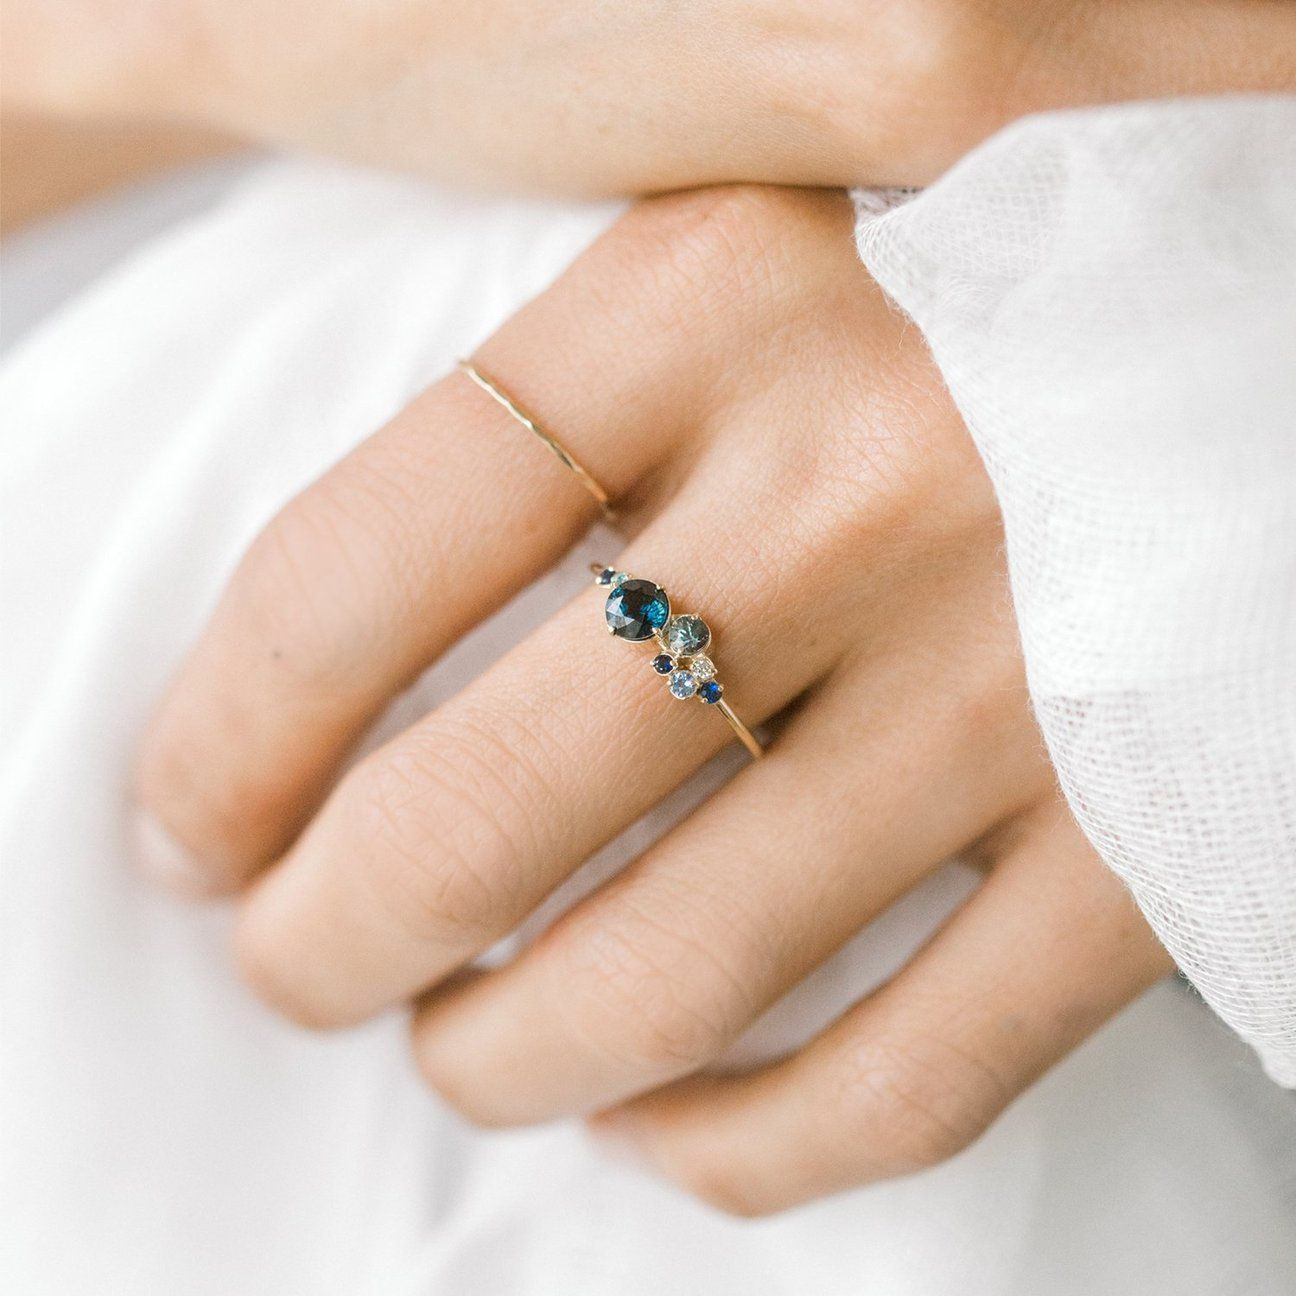 Blue Sapphire Indie Ring Wedding ring designs